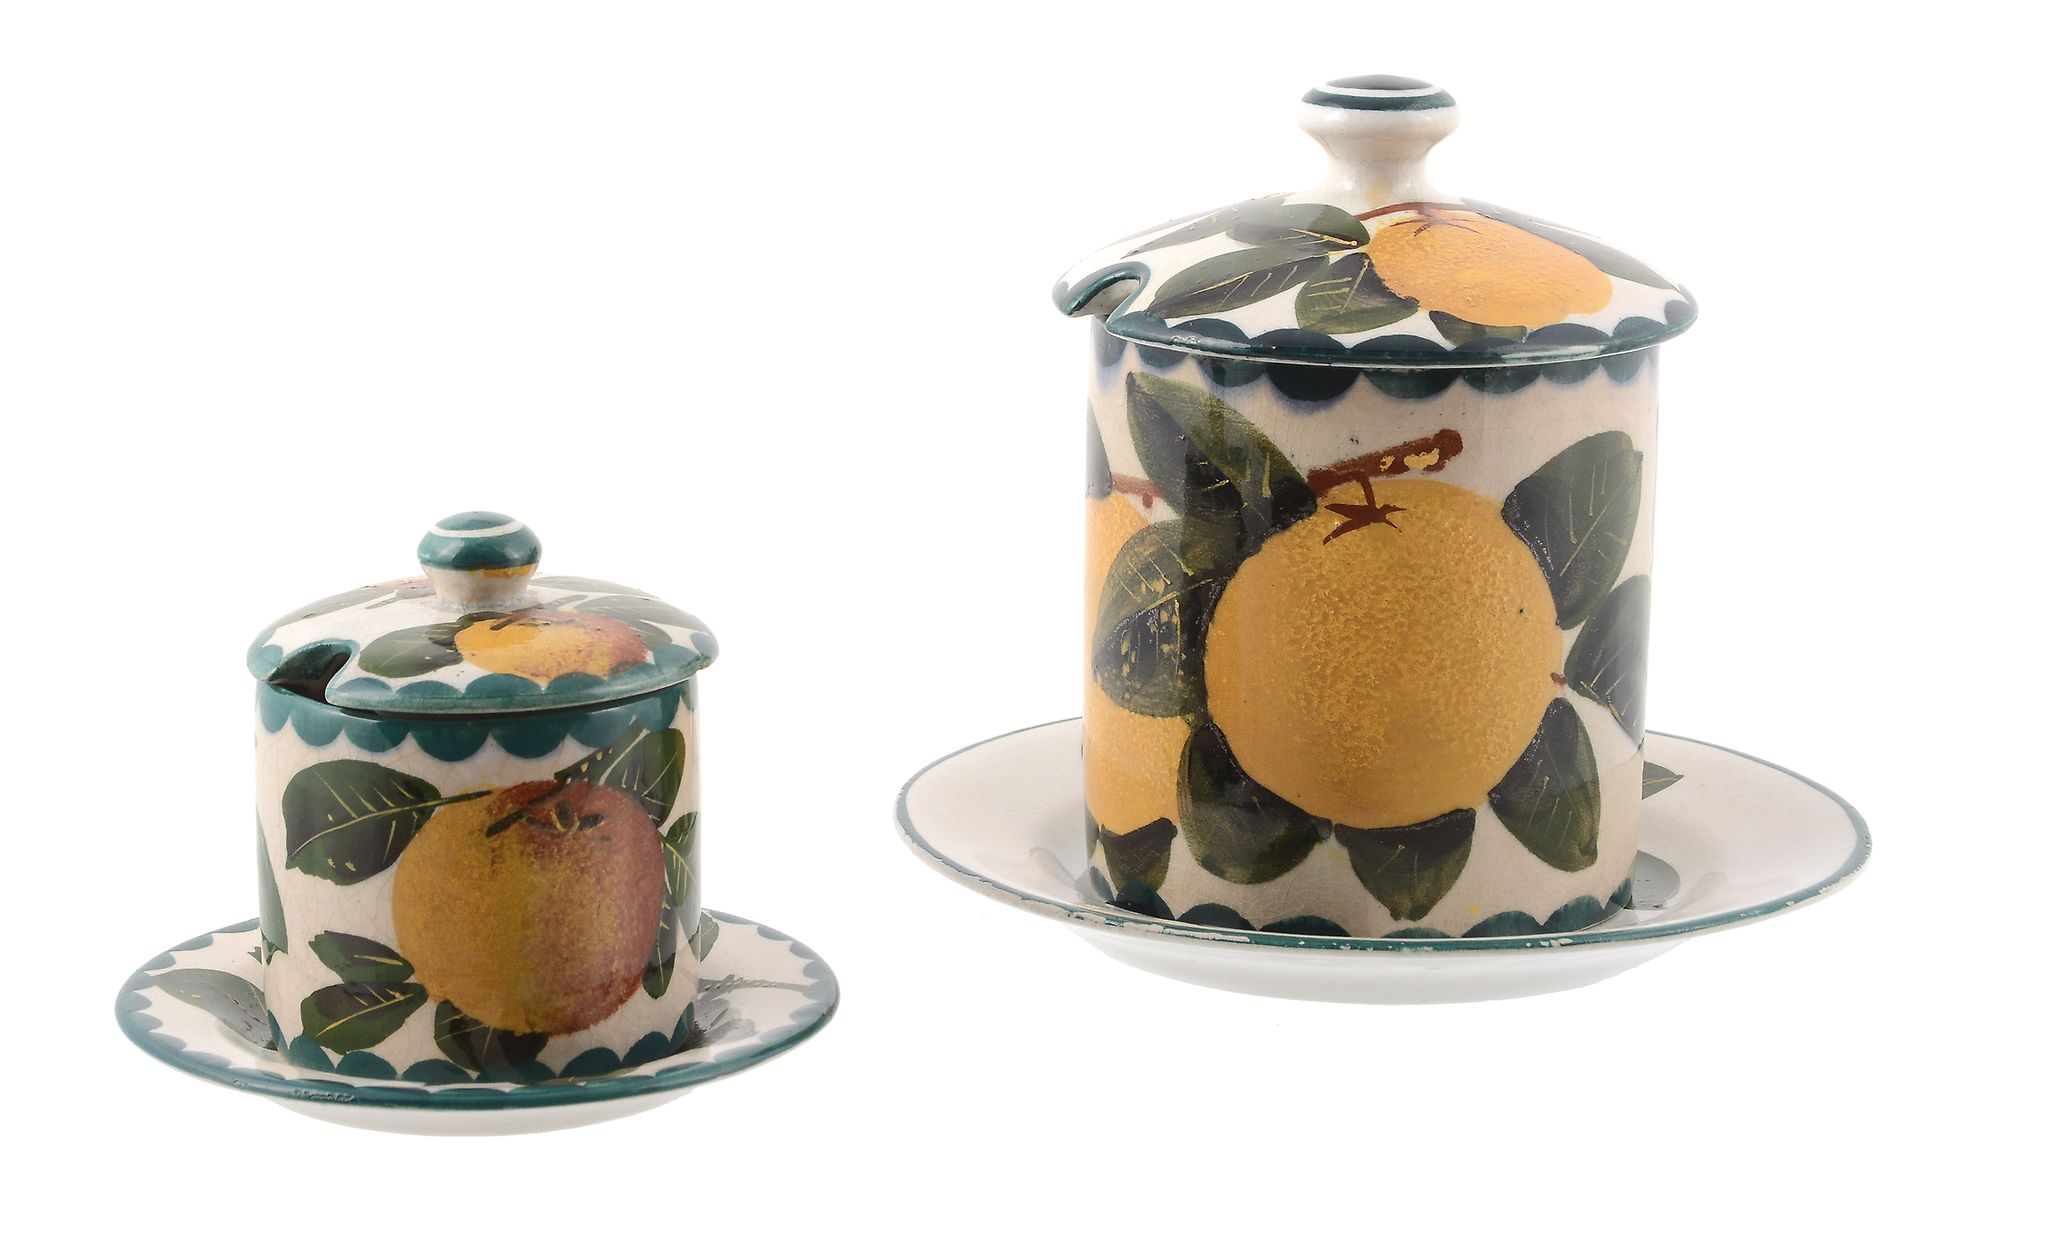 A Wemyss preserve jar and cover, circa 1900, pianted with branches or oranges